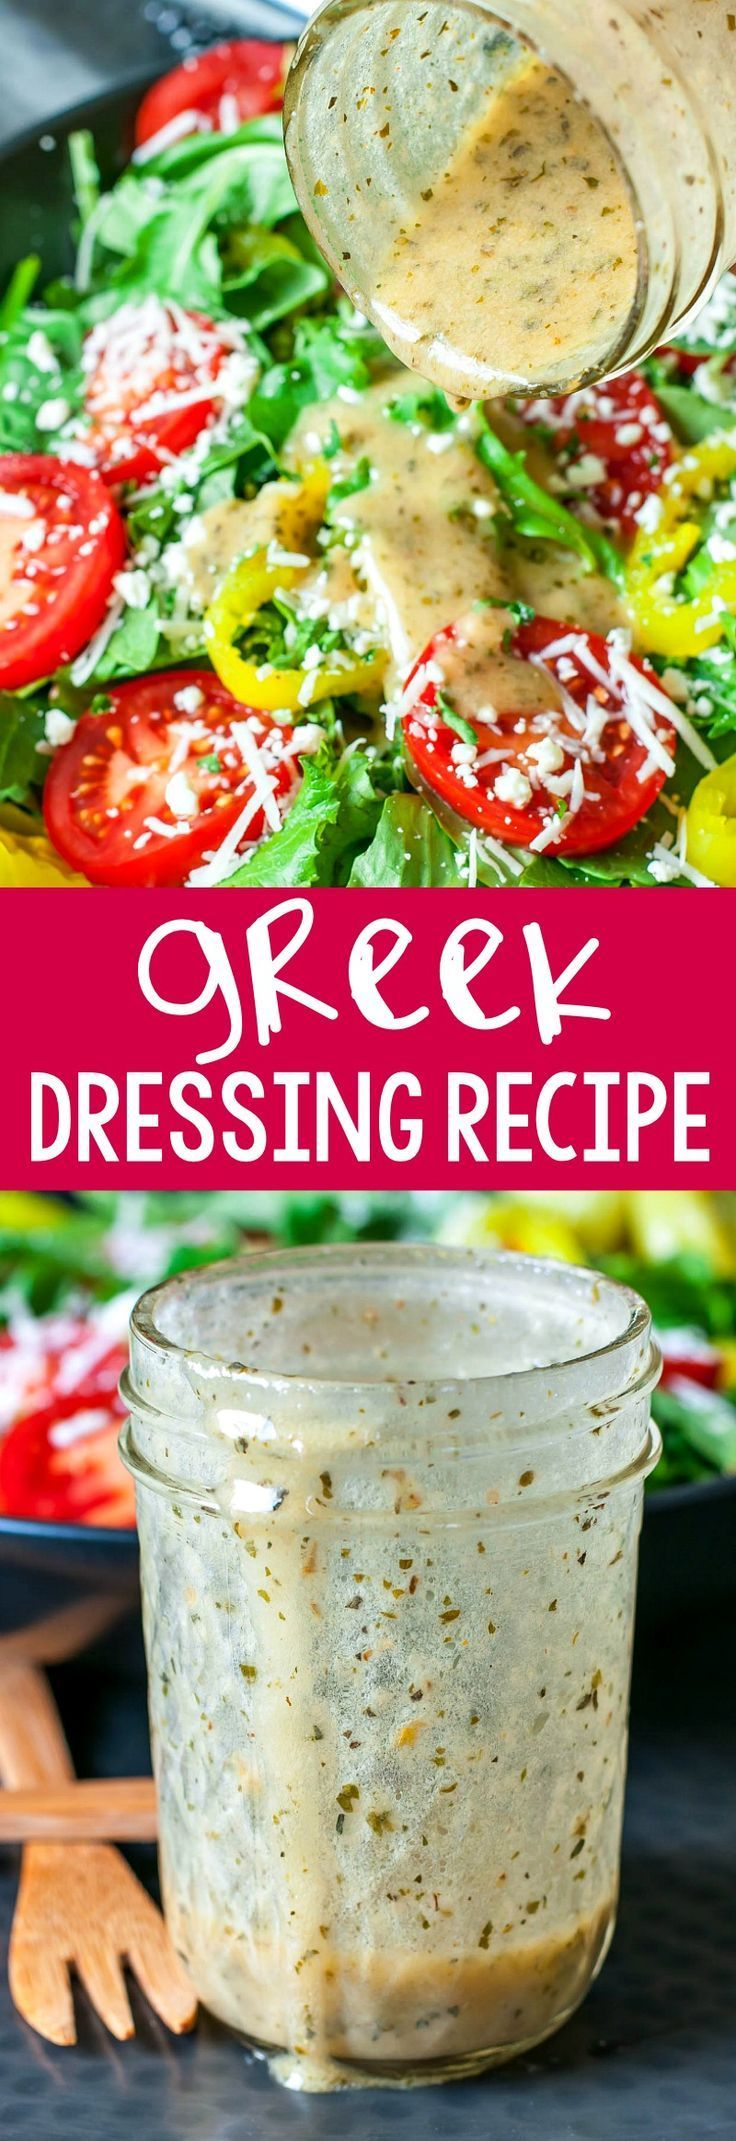 Ditch the bottled dressing and whip up this super quick super easy homemade Greek dressing at home This speedy mediterranean dressing uses a few simple and flavorful ingr...